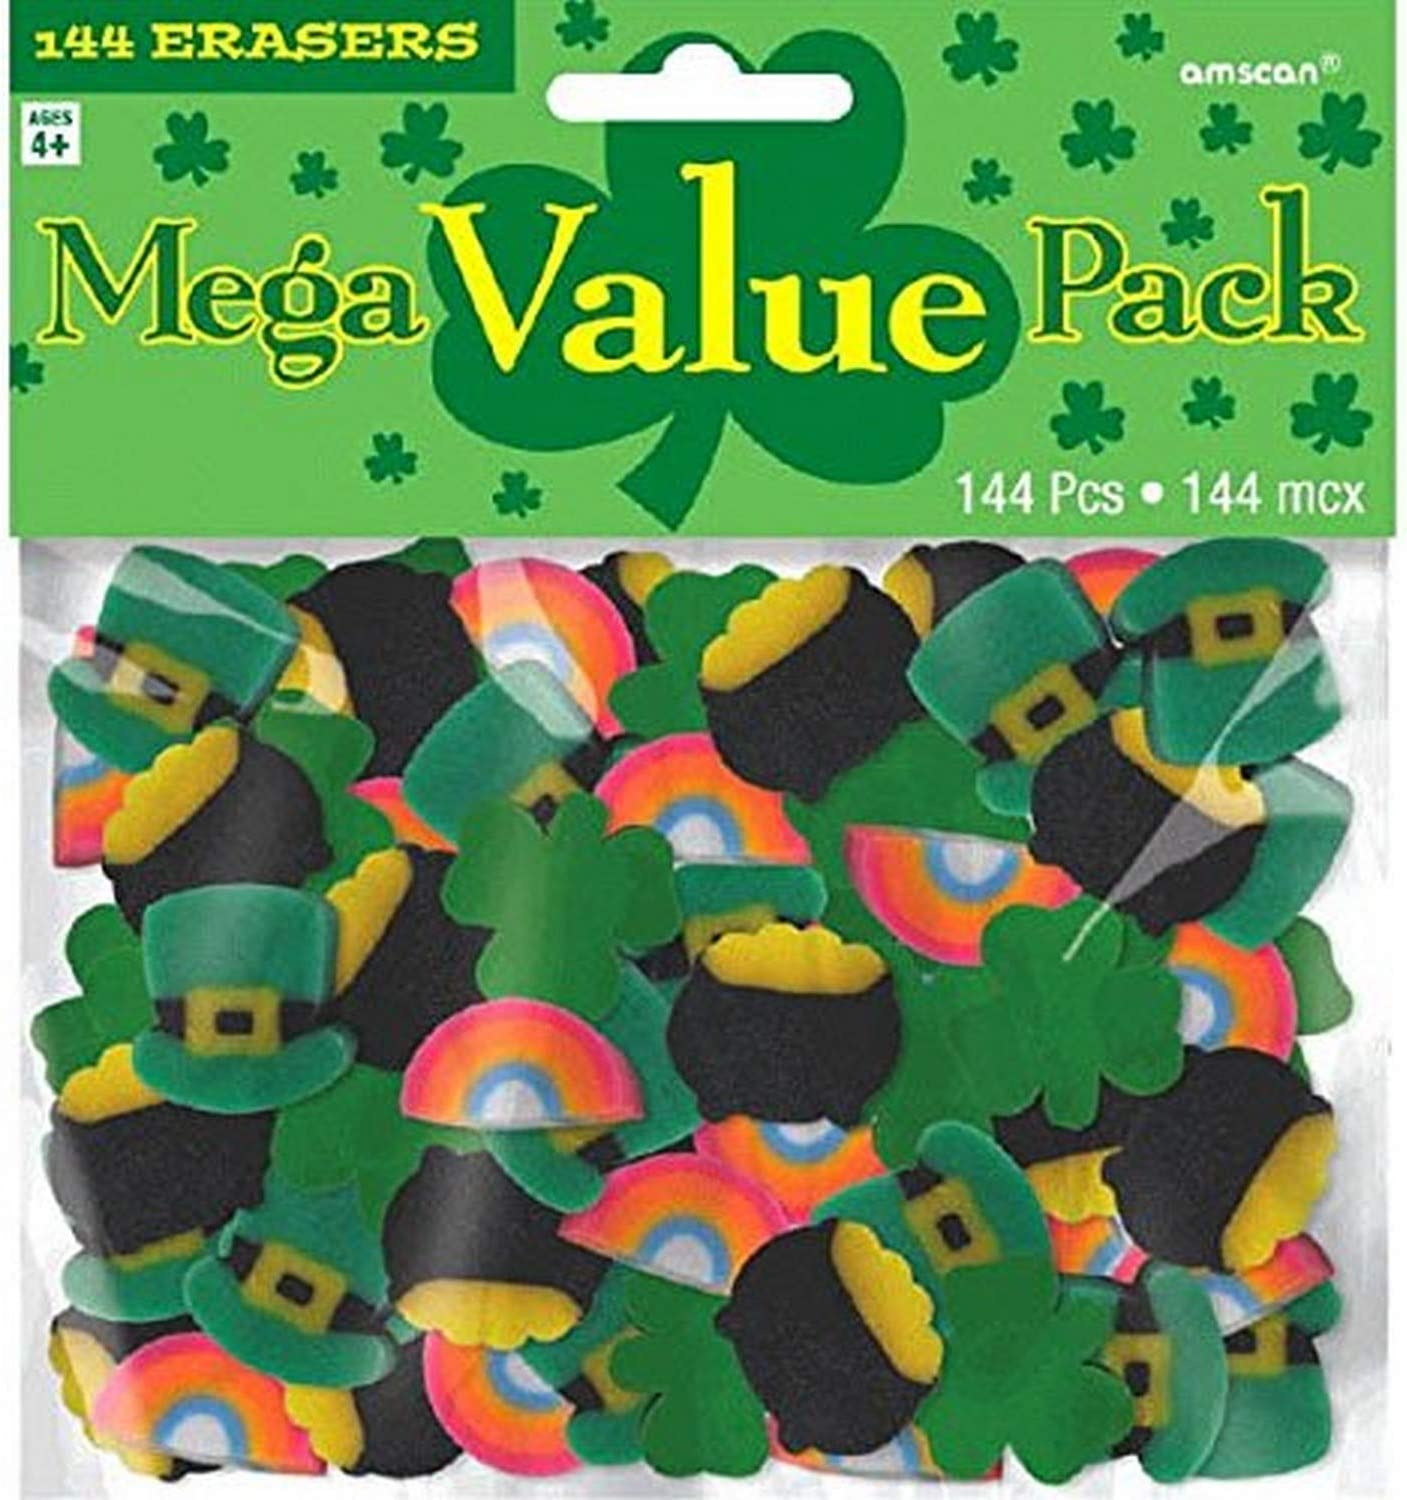 Amscan 394944 St. Patrick's Day Mini Rubber Erasers, 144 Ct.   Assorted Colors   Party Accessory